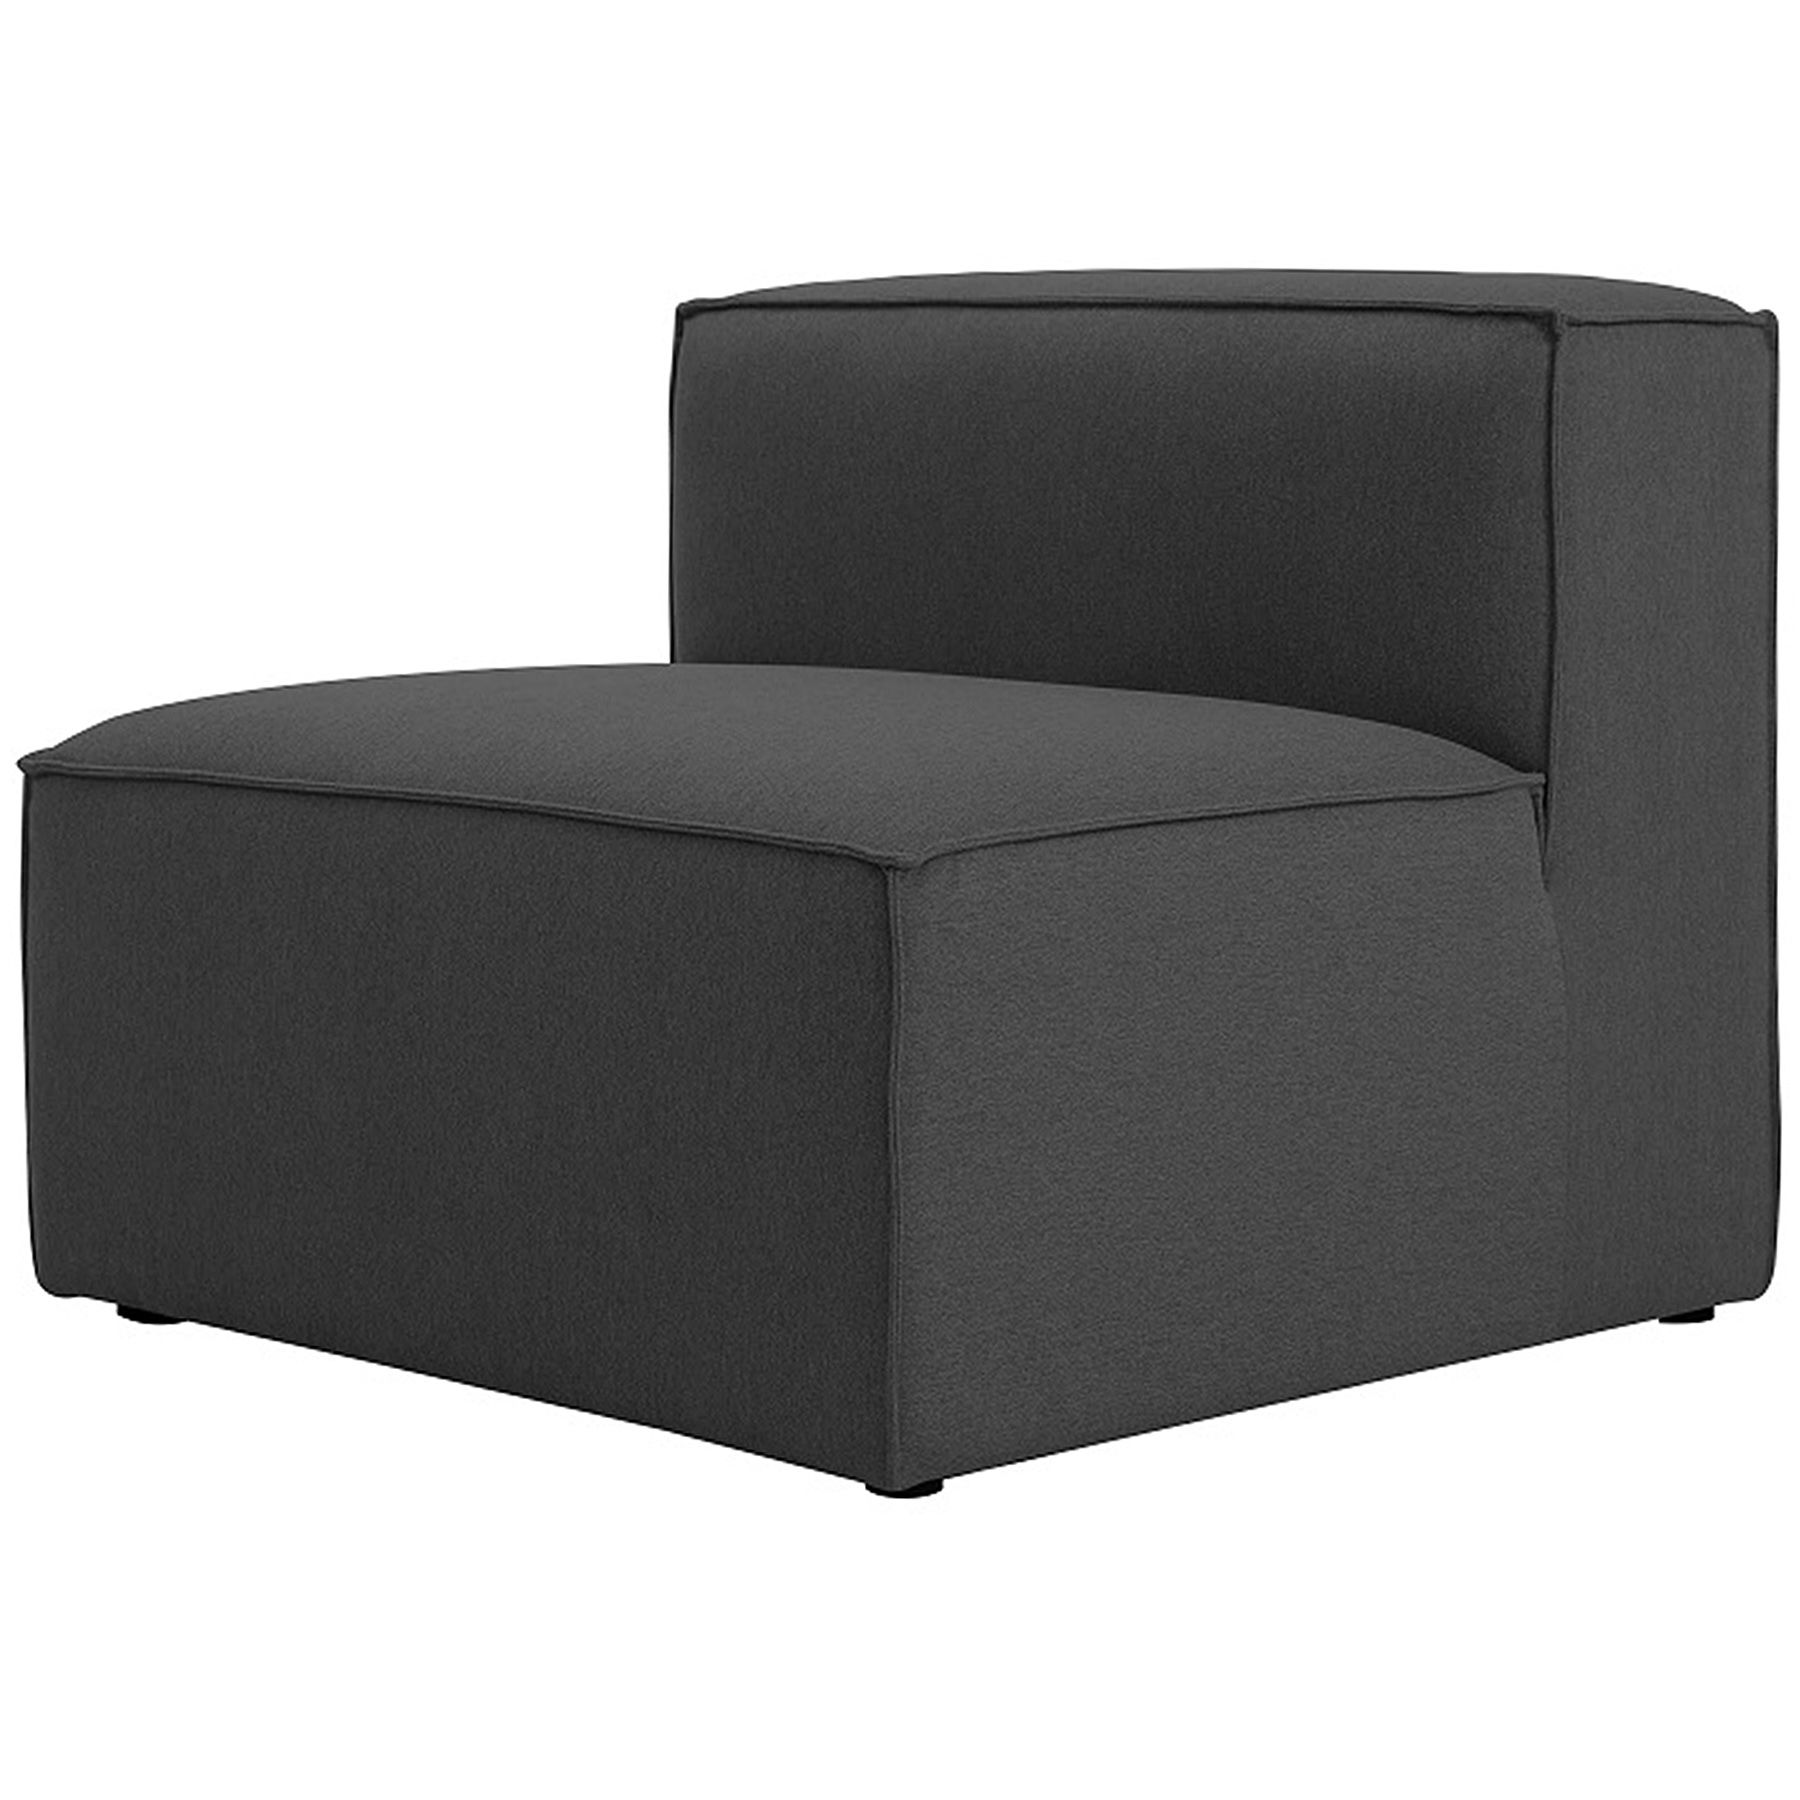 Modular Sofa, Dark Grey